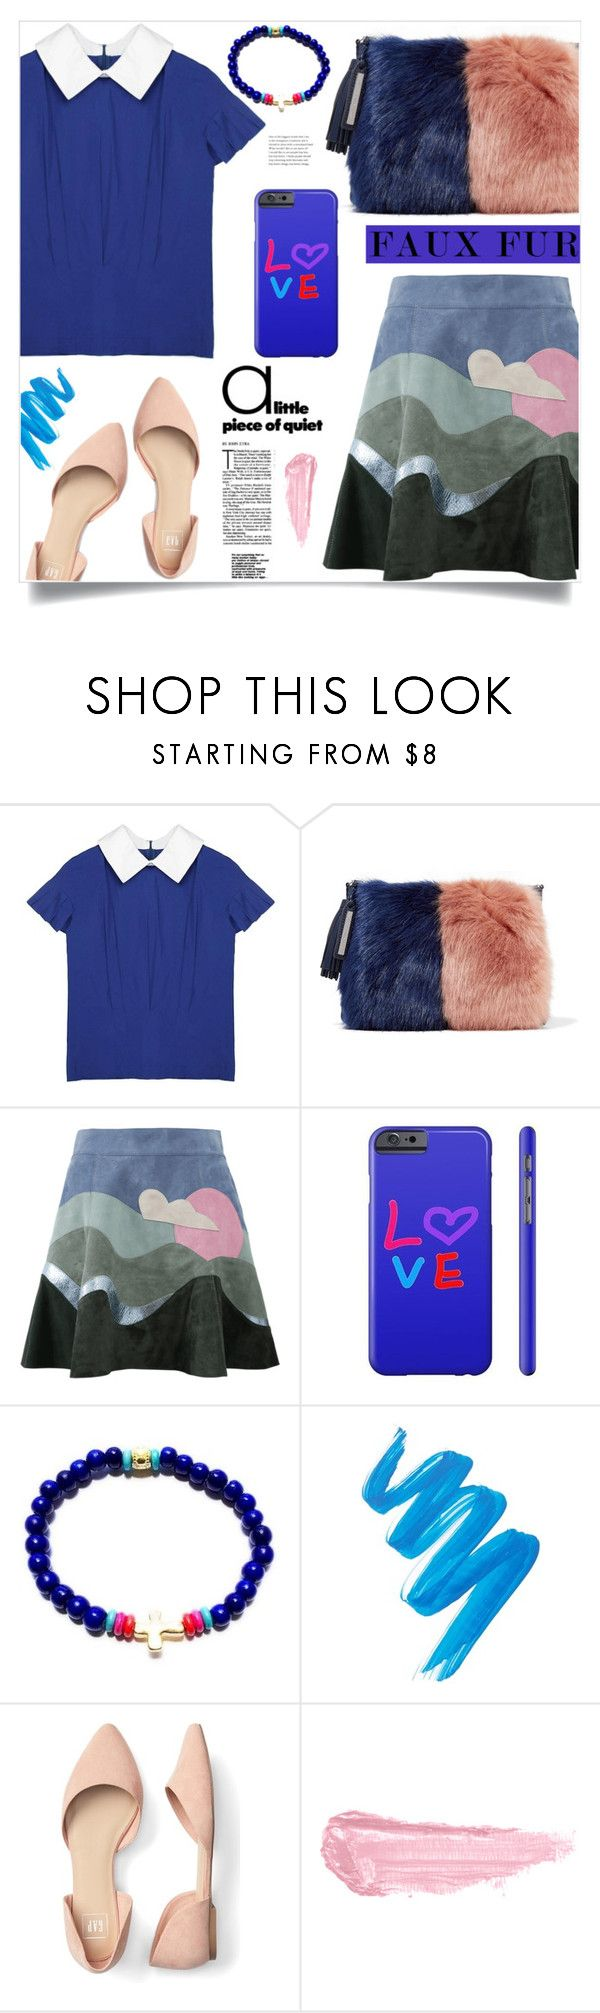 """""""Wow Factor: Faux Fur (19)"""" by samra-bv ❤ liked on Polyvore featuring Loeffler Randall, Marc Jacobs, L.A. Girl and By Terry"""